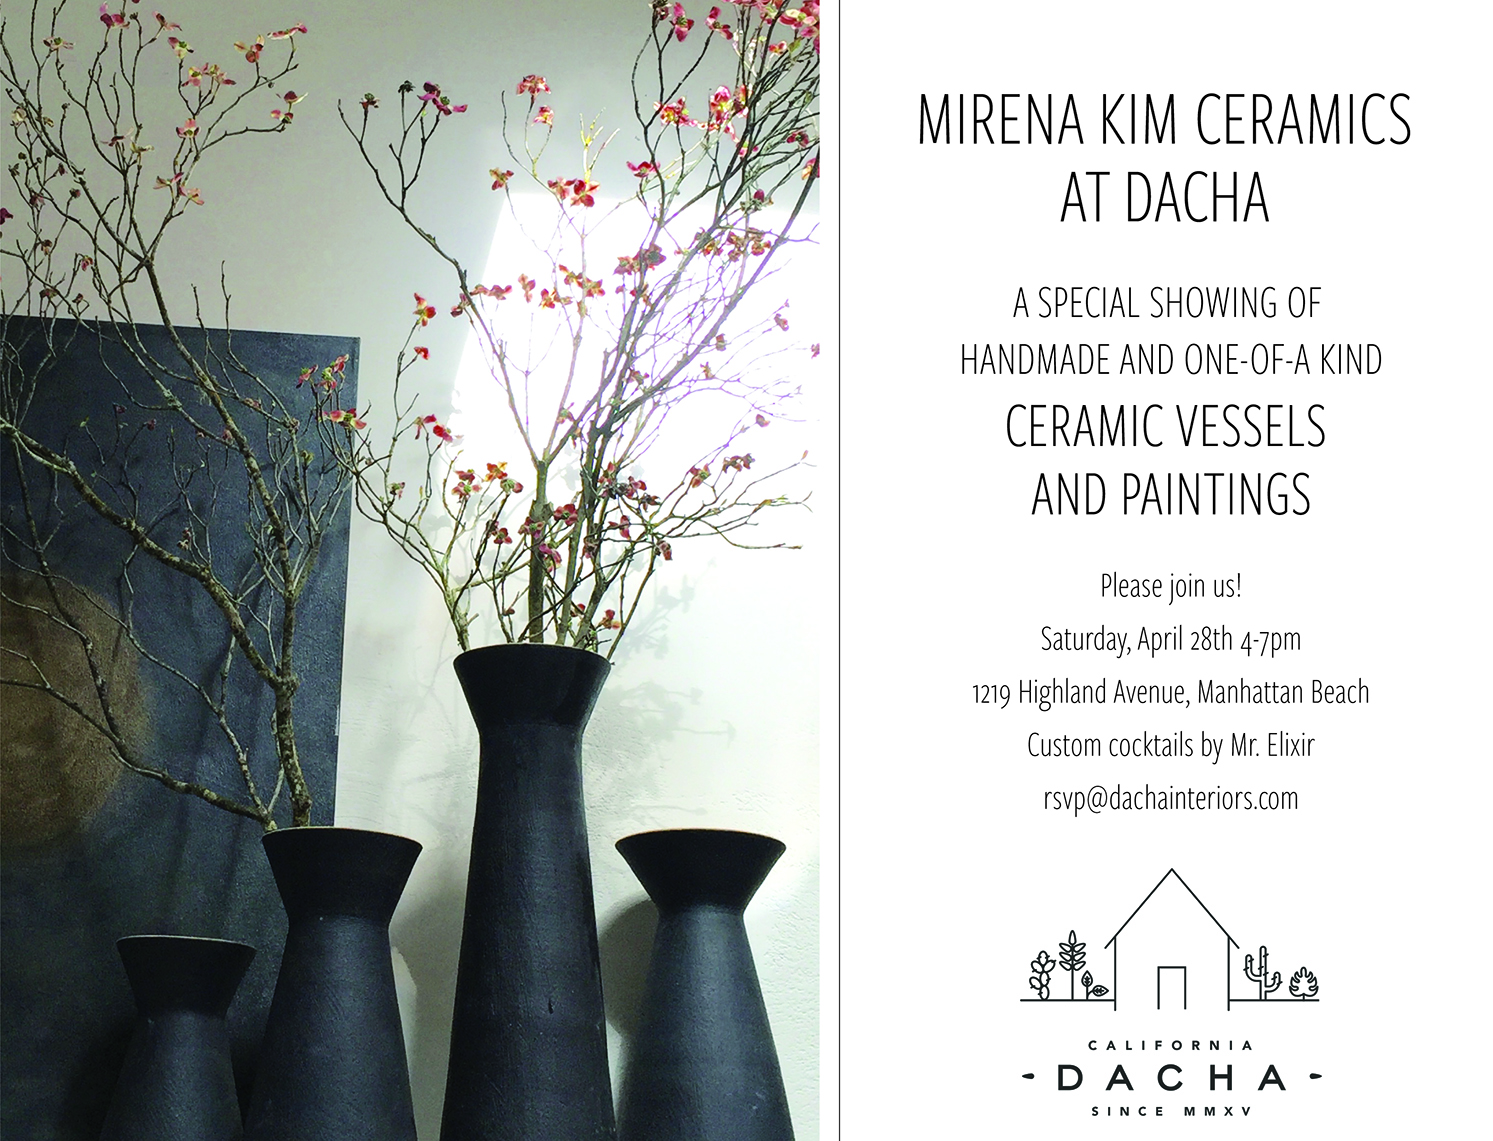 MIRENA KIM CERAMICS AT DACHA A SPECIAL SHOWING OFHANDMADE AND ONE-OF-A KIND CERAMIC VESSELS AND PAINTINGS Please join us! Saturday, April 28th 4-7pm1219 Highland Avenue, Manhattan Beach Custom cocktails by Mr. Elixirrsvp@dachainteriors.com  -